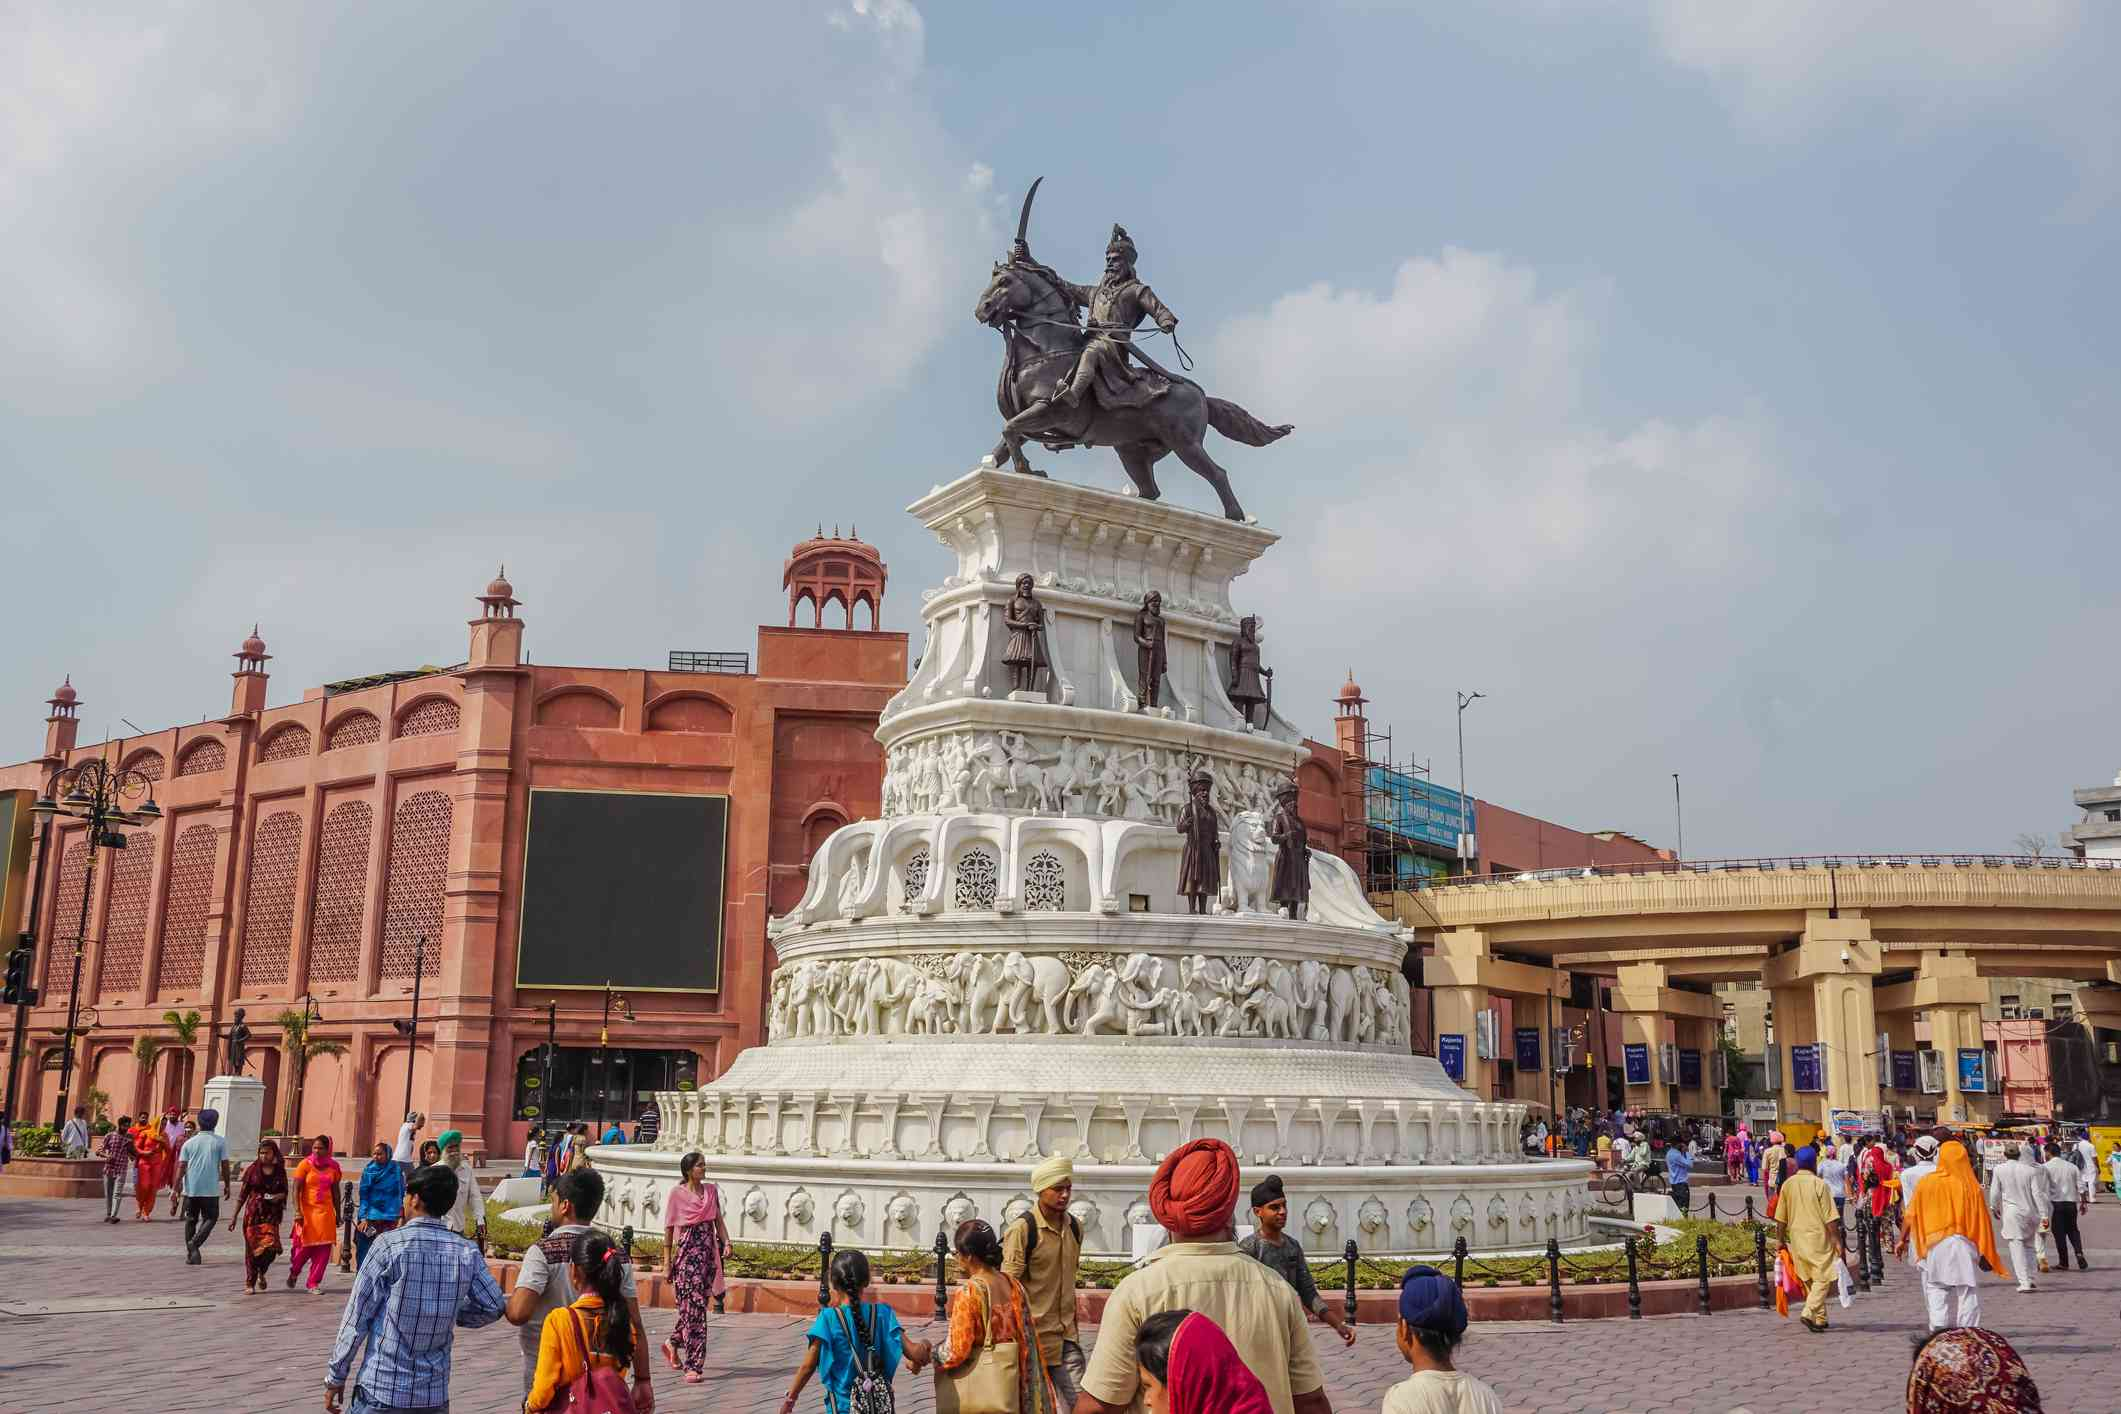 Old Indian street, architecture and everyday life in Amritsar, Punjab